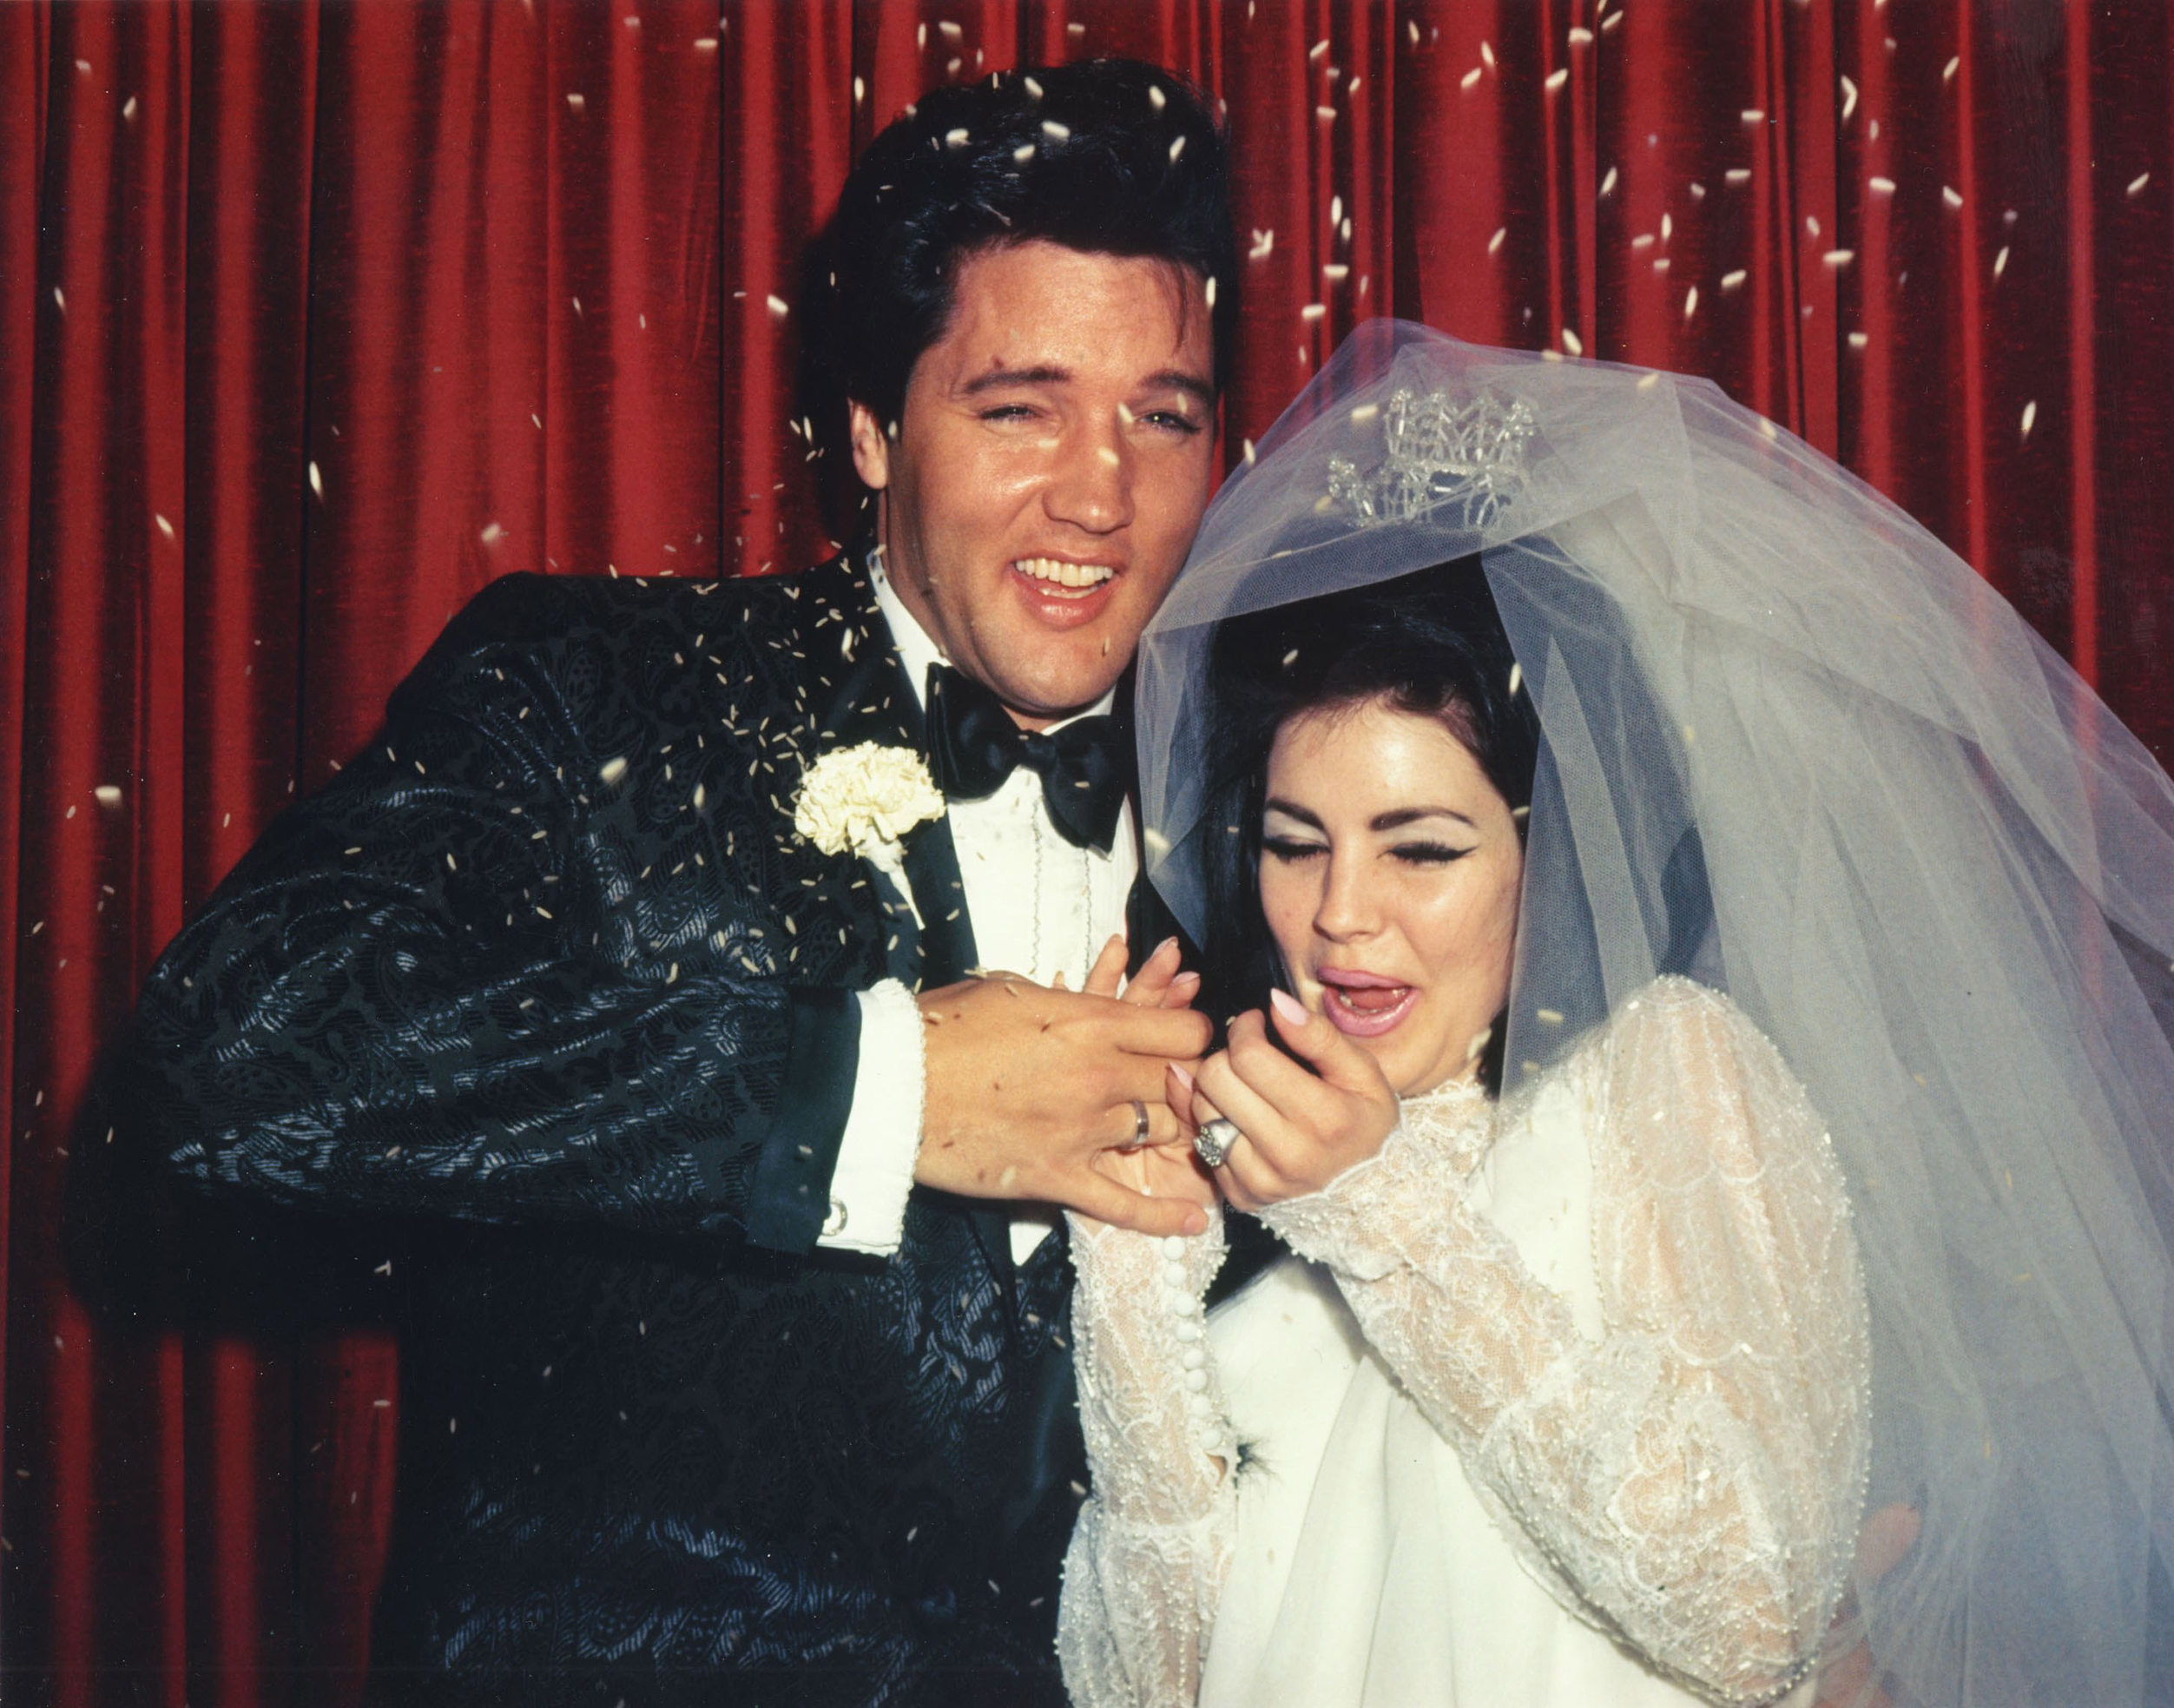 Elvis Presley and Priscilla on their wedding day, May 1,1967.